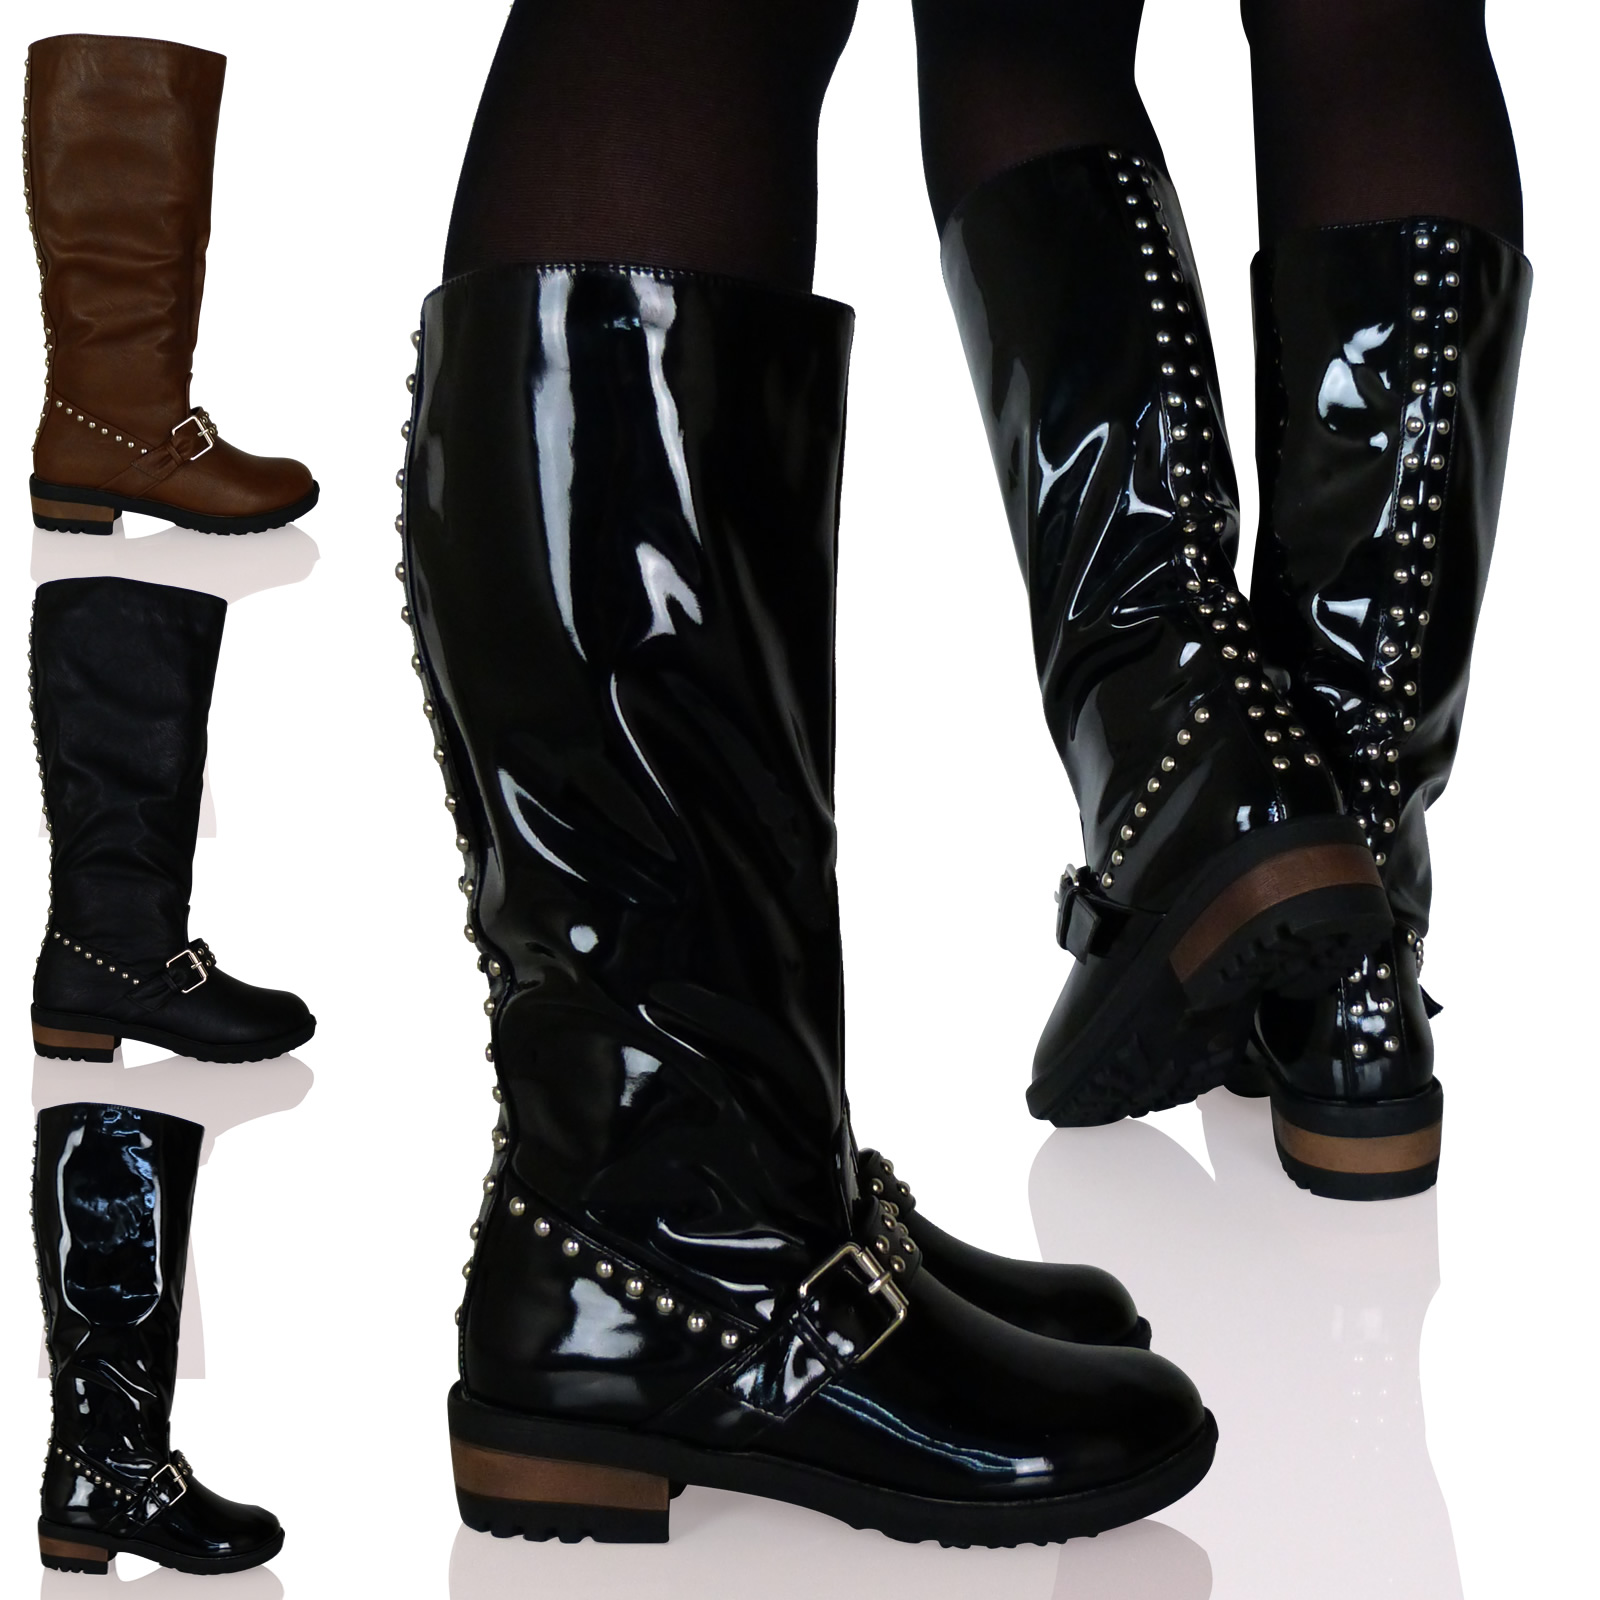 D8Z Womens Ladies Mid Calf Boots Stud Buckle Detail Low Heel Pull On Shoes Size